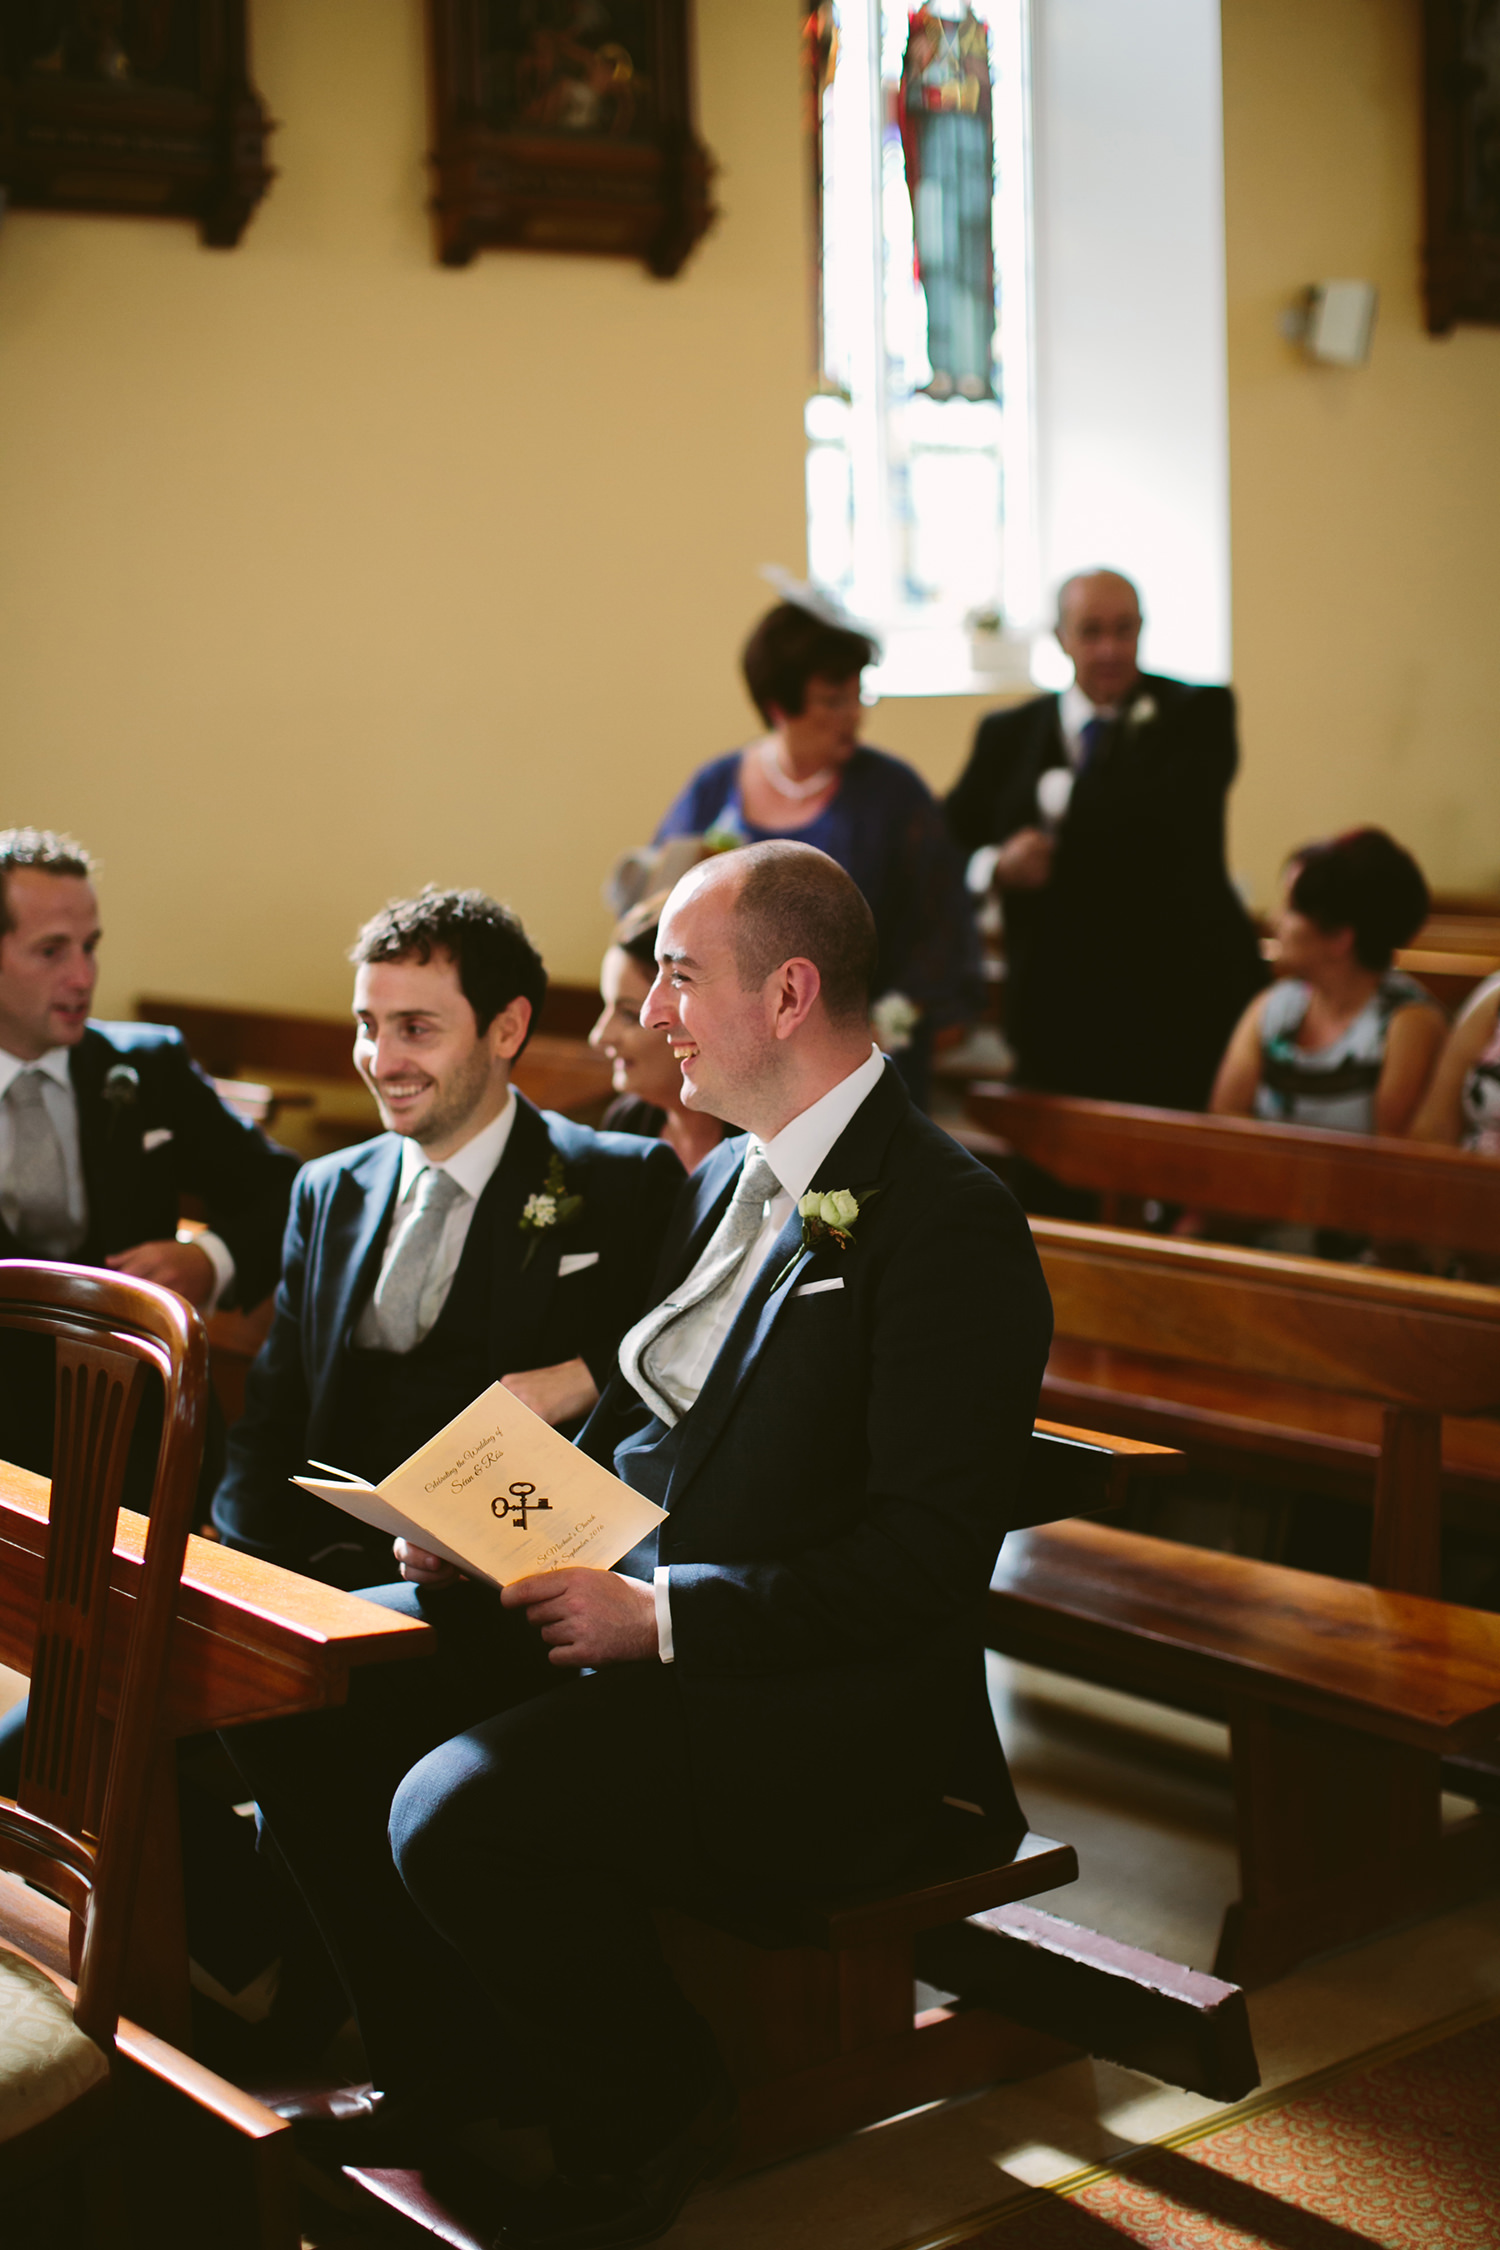 Northern Ireland Wedding Photographers Adam and Grace 0194